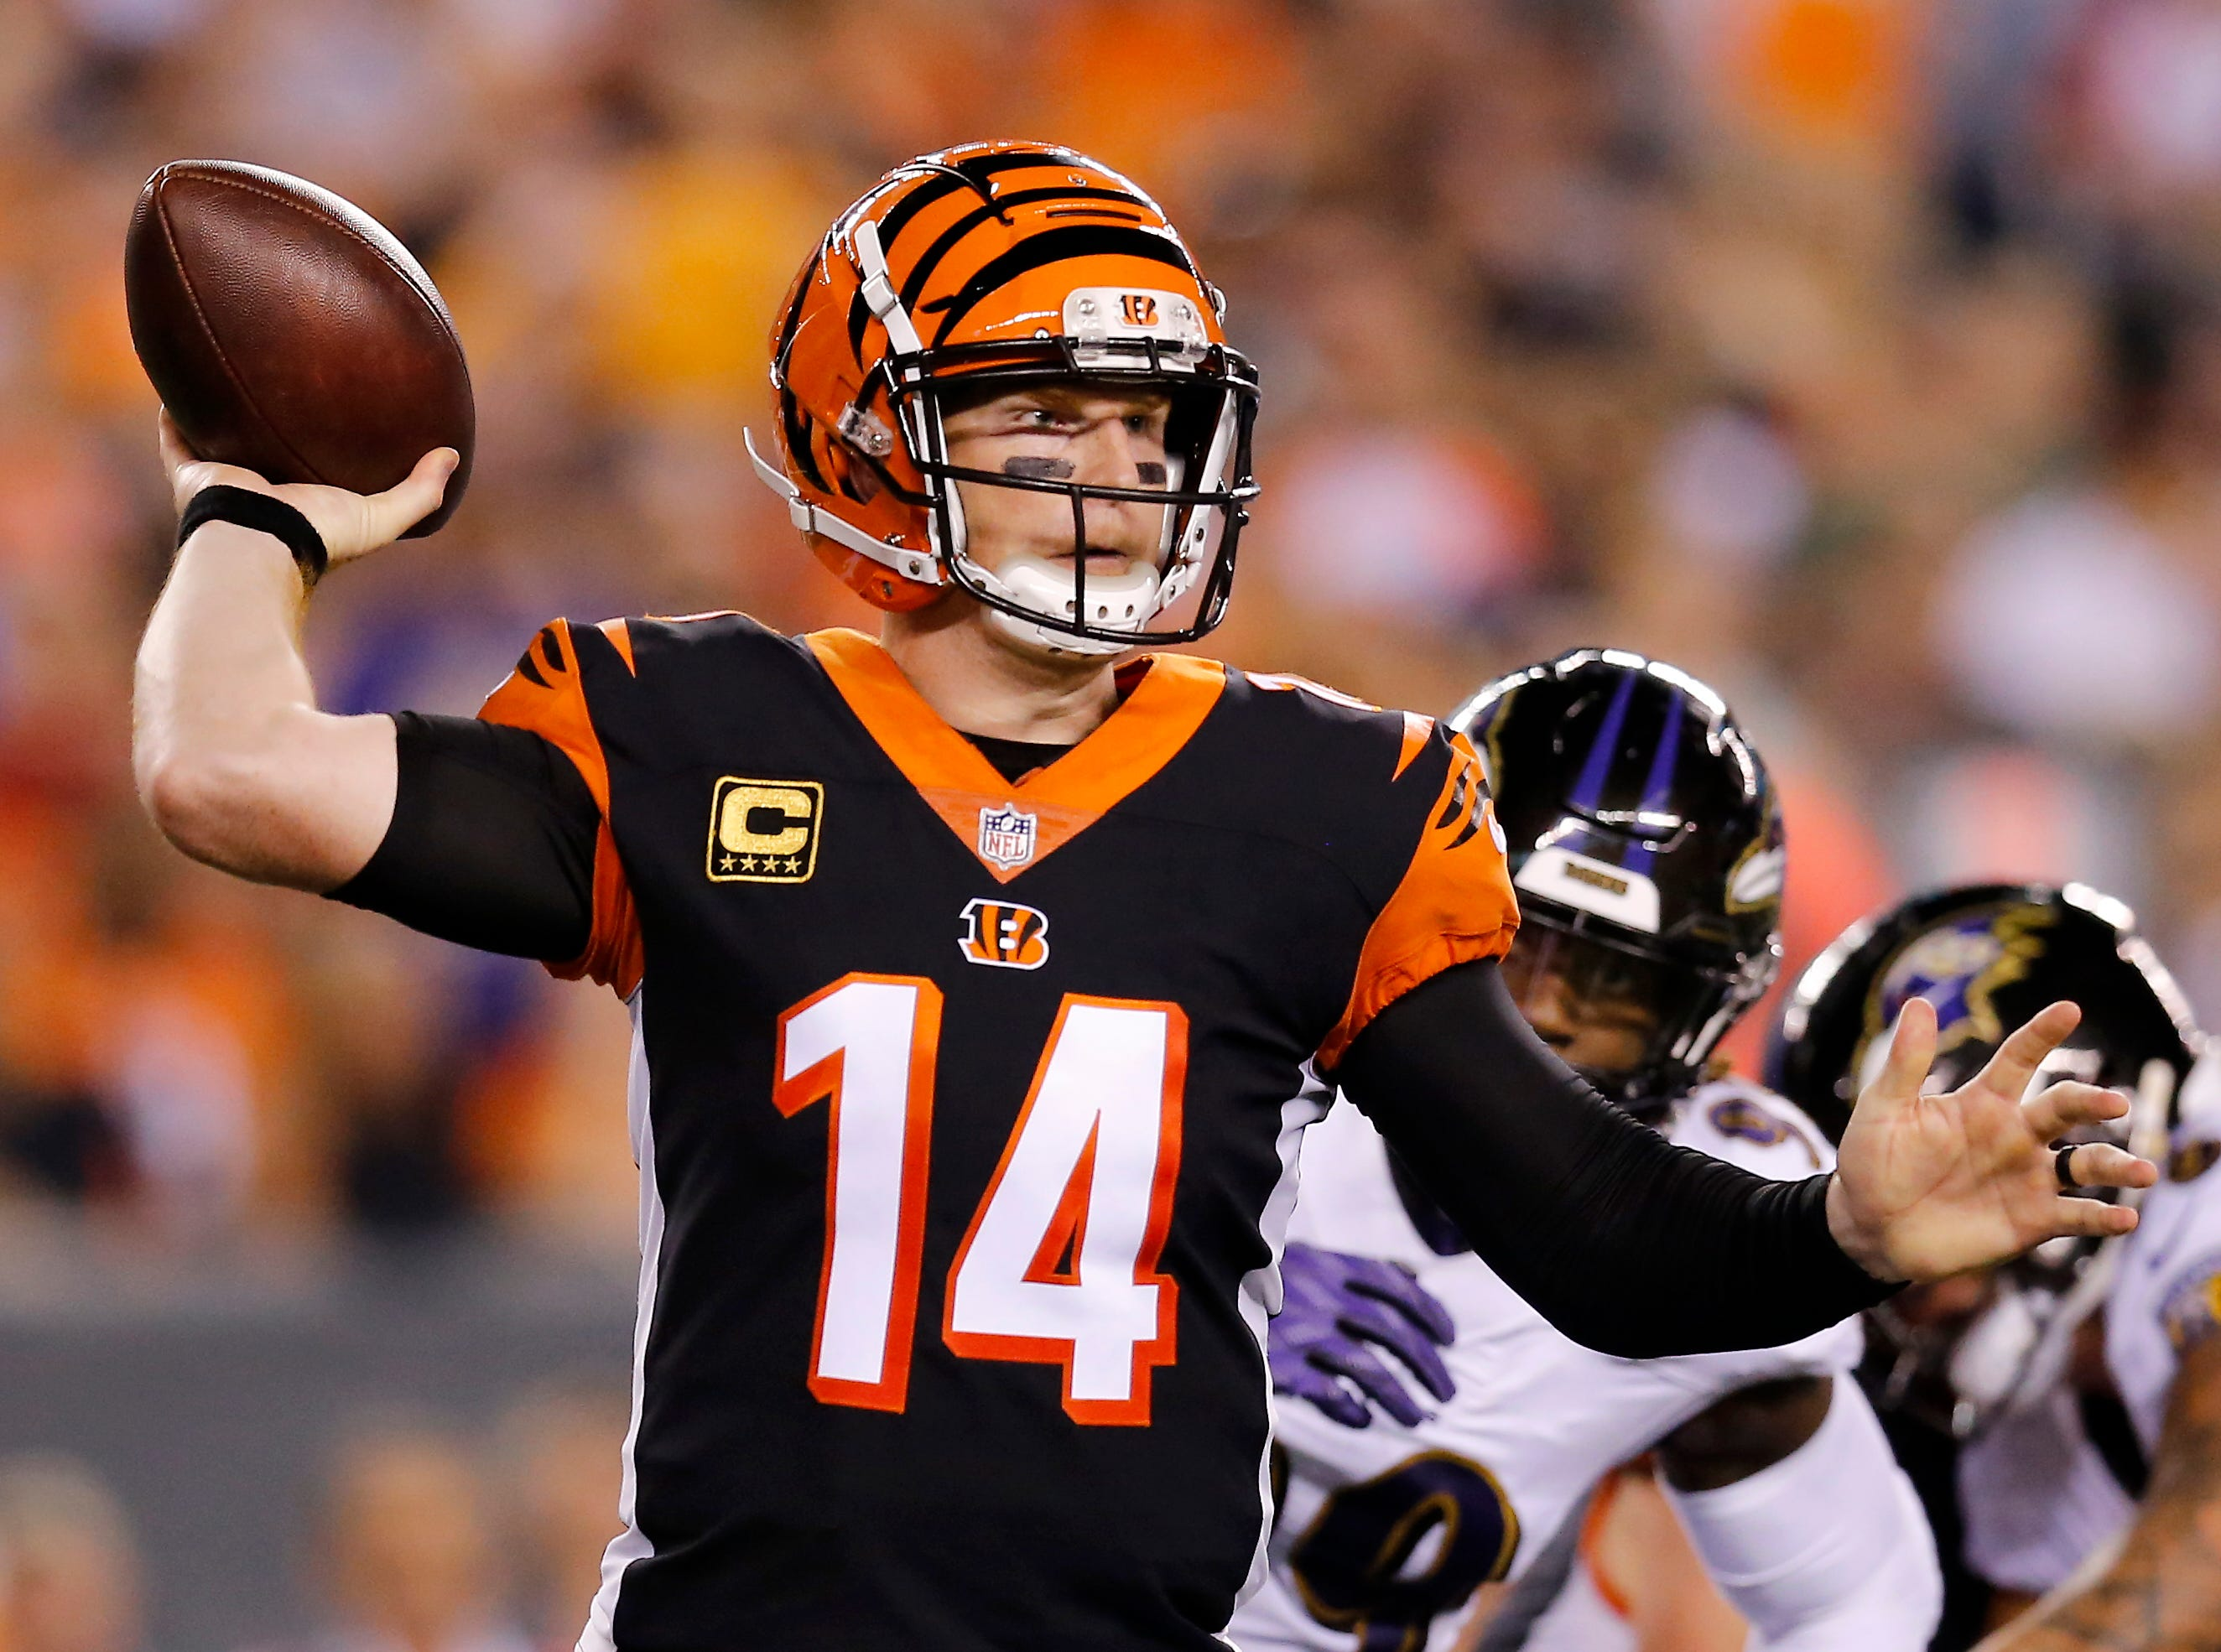 Cincinnati Bengals quarterback Andy Dalton (14) throws on the run in the second quarter of the NFL Week 2 game between the Cincinnati Bengals and the Baltimore Ravens at Paul Brown Stadium in downtown Cincinnati on Thursday, Sept. 13, 2018. The Bengals led 28-14 at halftime.